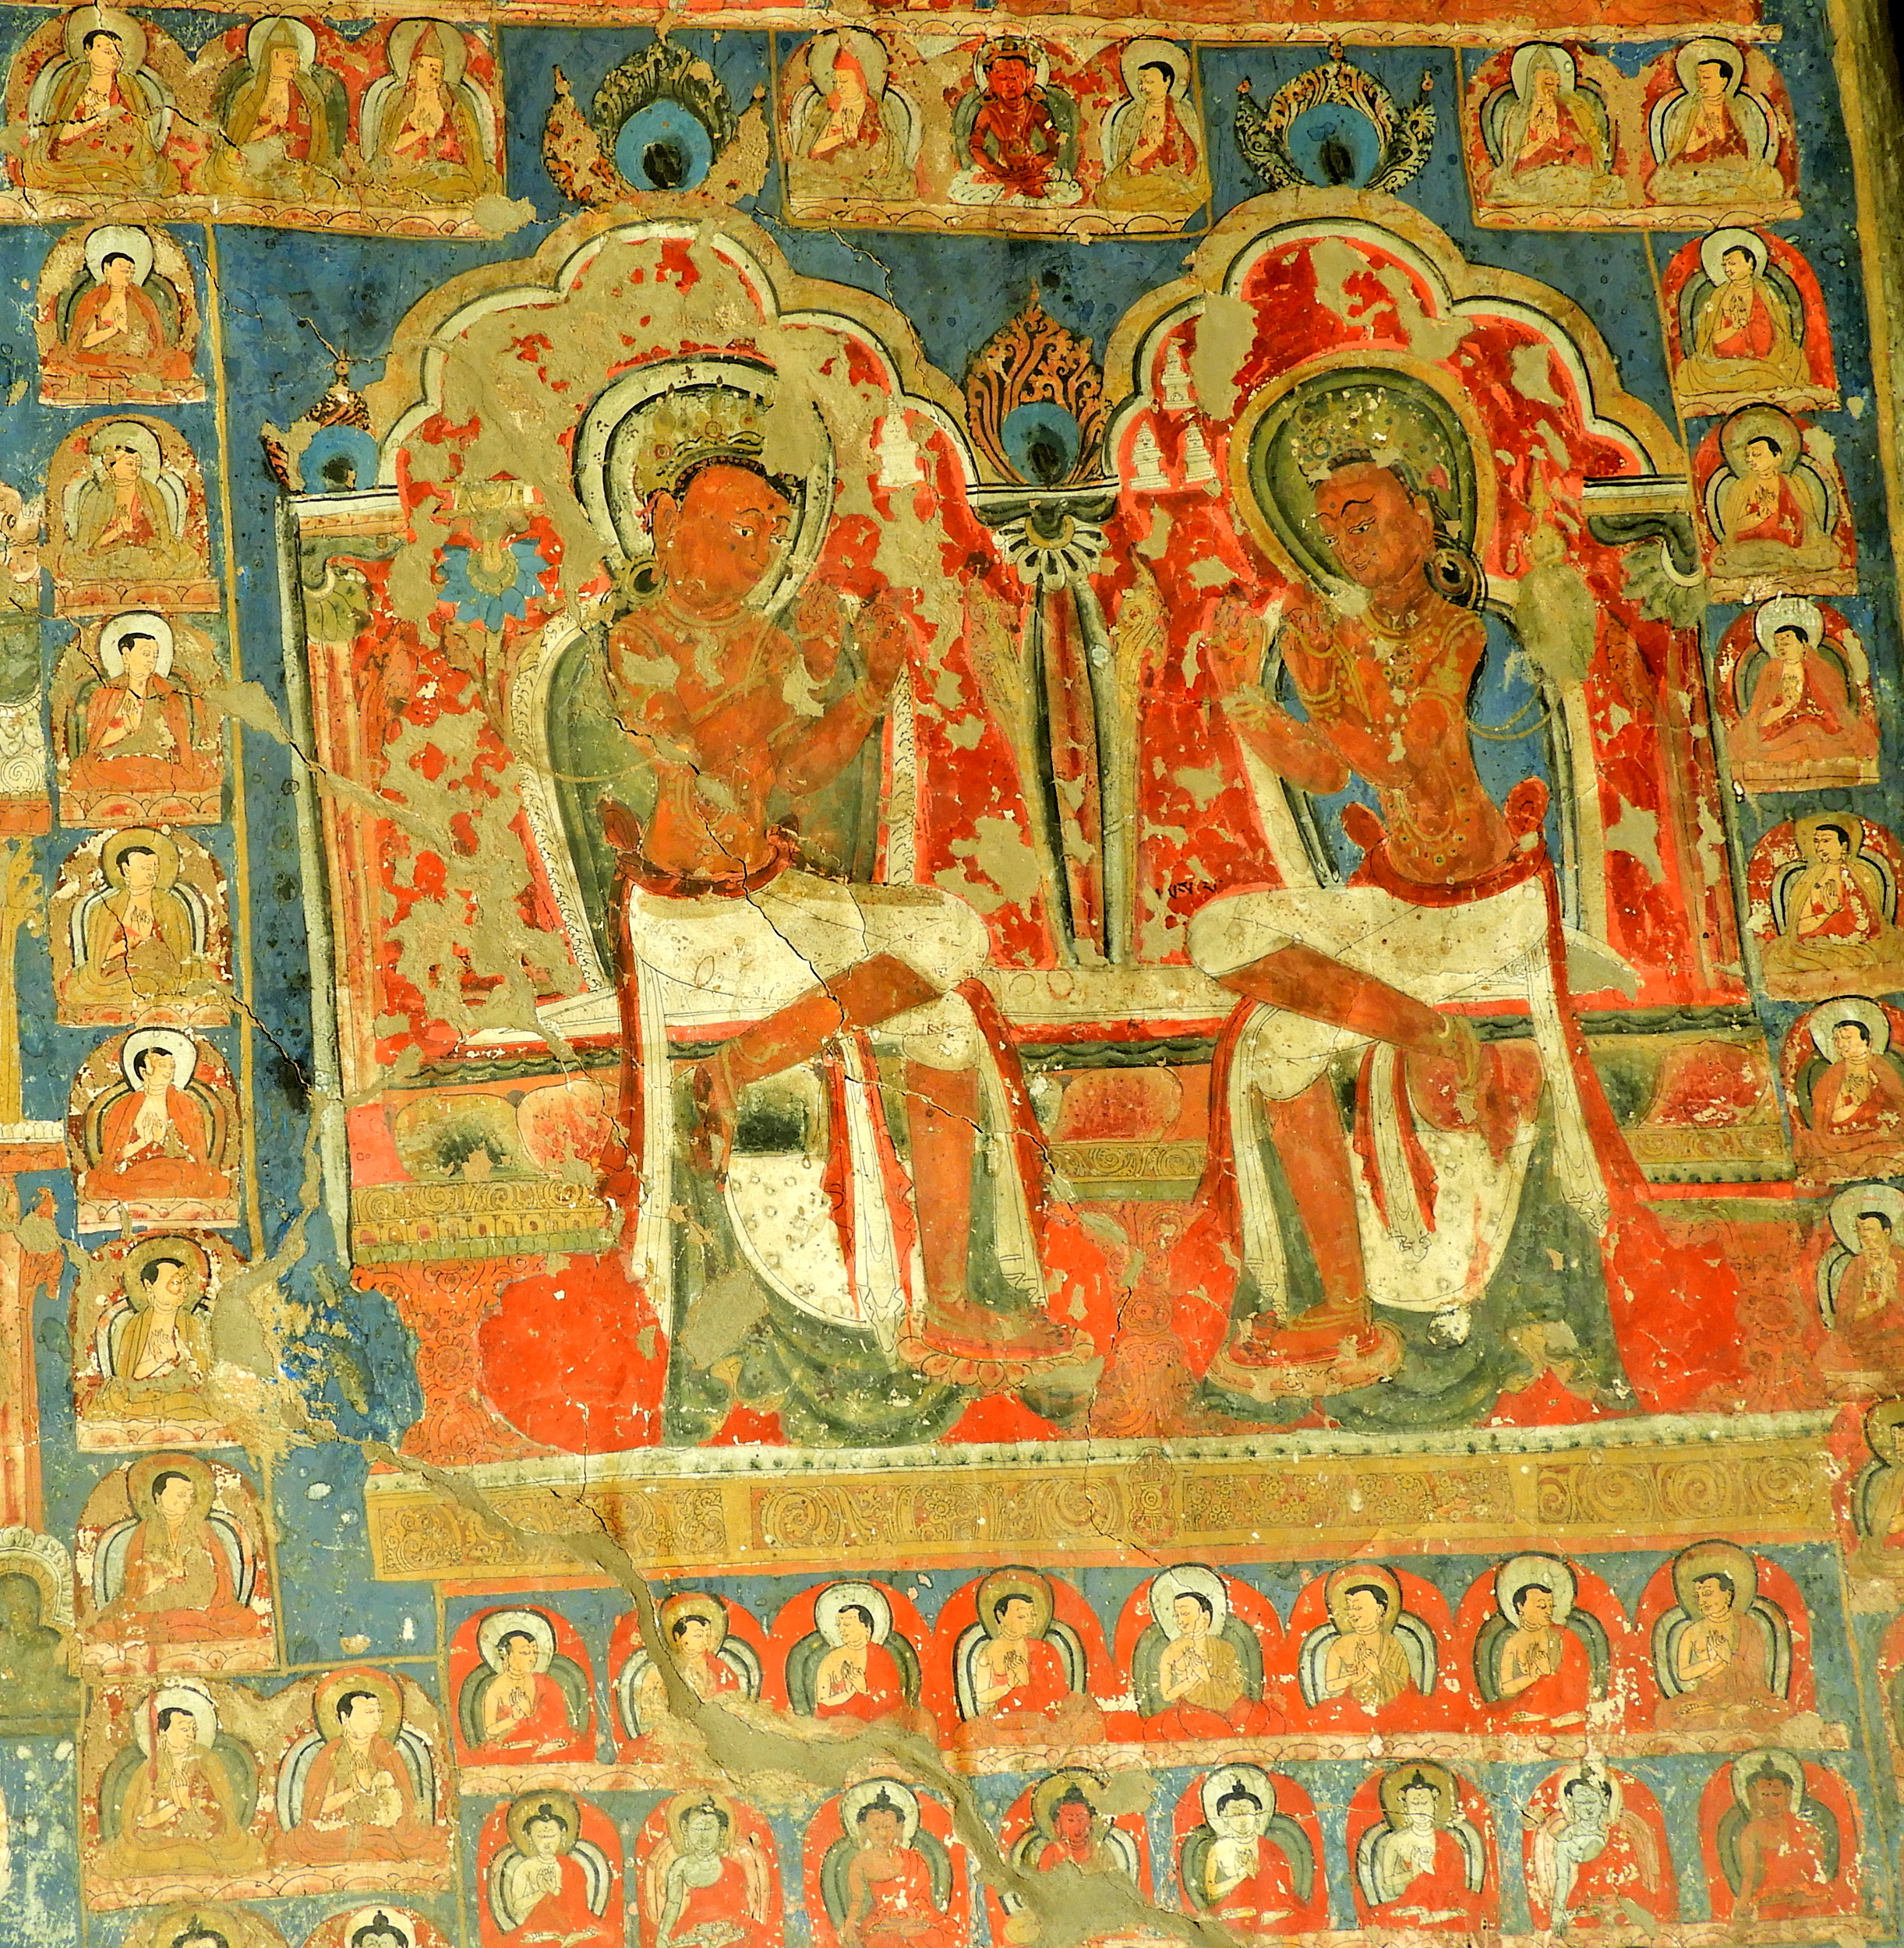 File:Wall Painting in Saspol cave DSCN7057 7.jpg - Wikimedia Commons